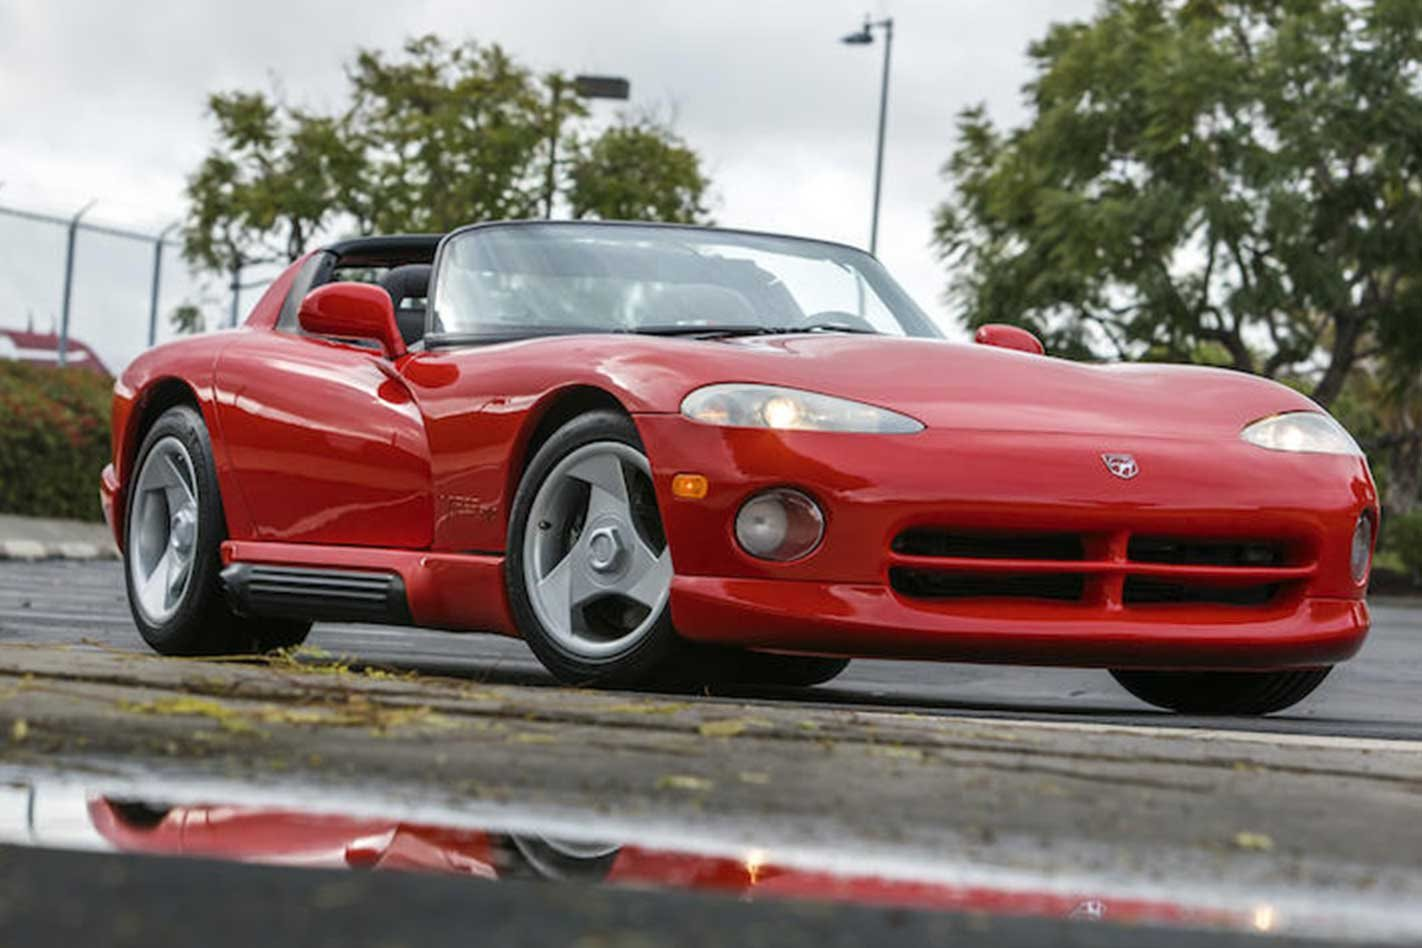 Lee Iacocca's Dodge Viper, VIN 001, sells at auction